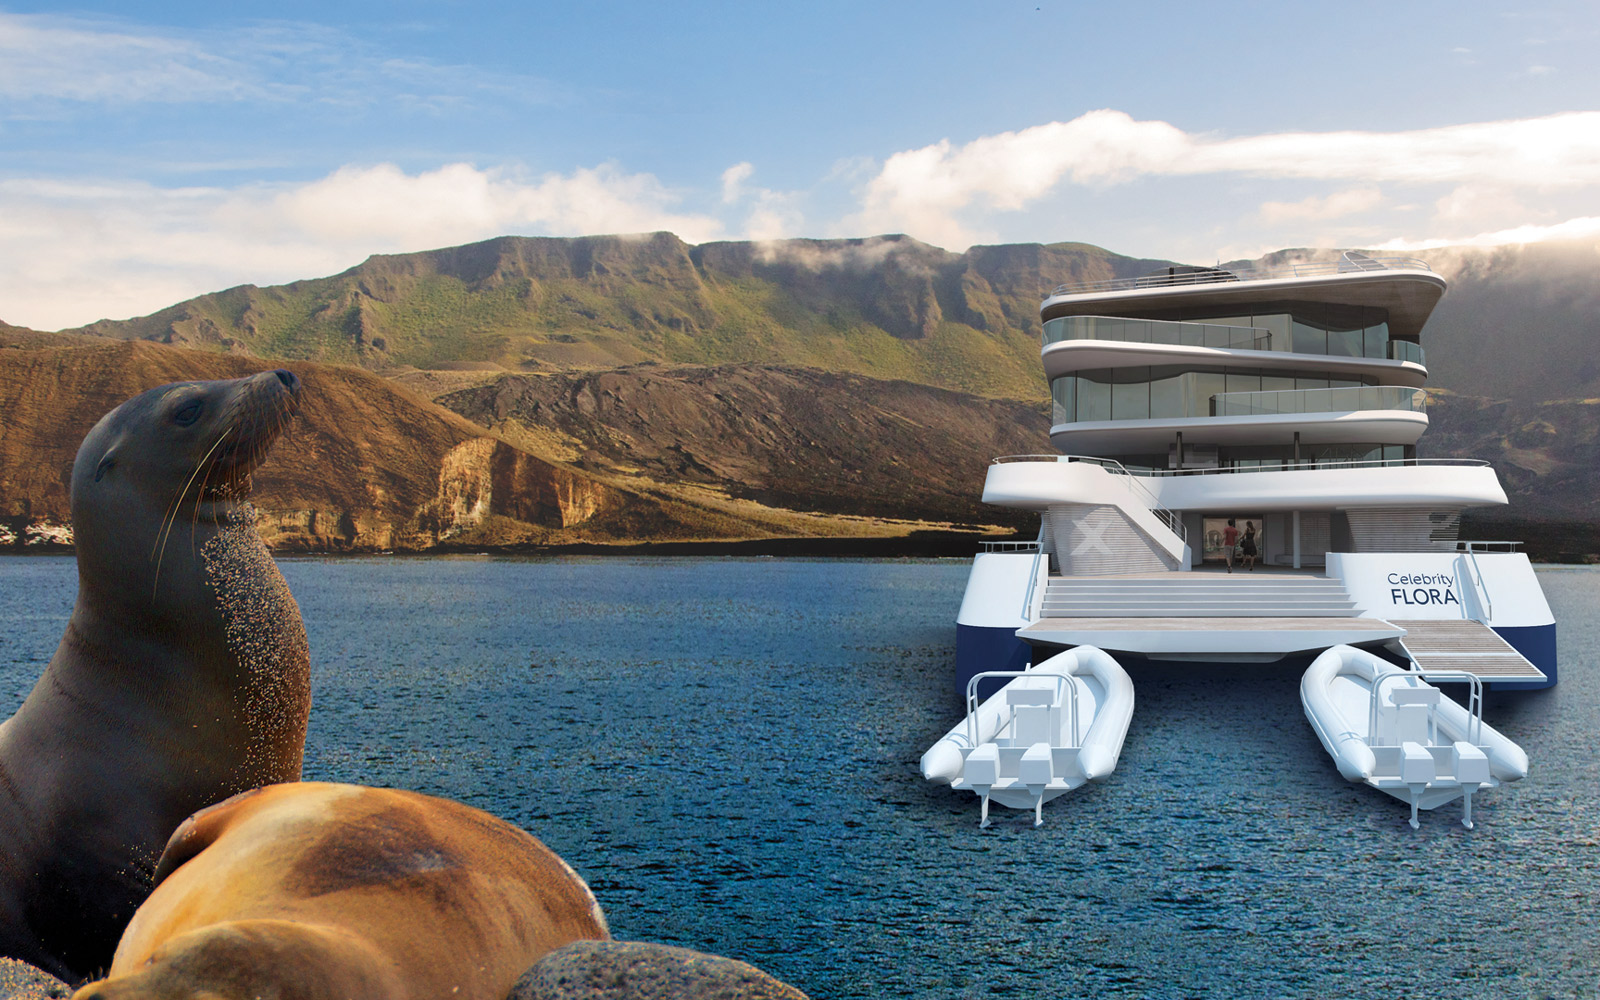 You Can Go Glamping at Sea on This Cruise to the Galapagos Islands